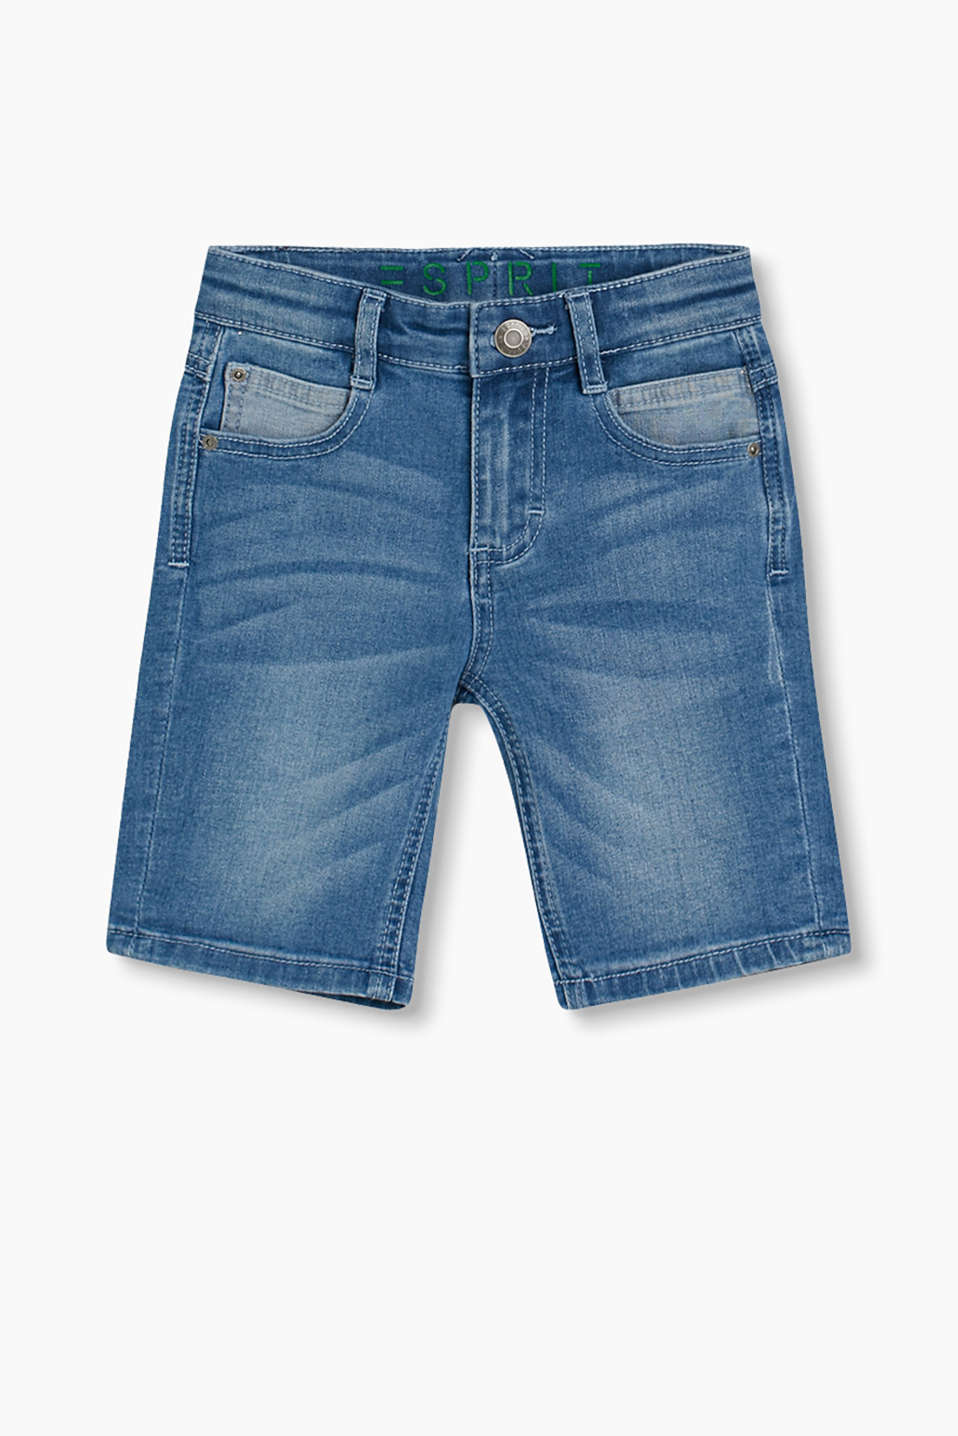 These casual denim shorts with washed-out effects, six pockets and an adjustable waistband are incredibly stylish